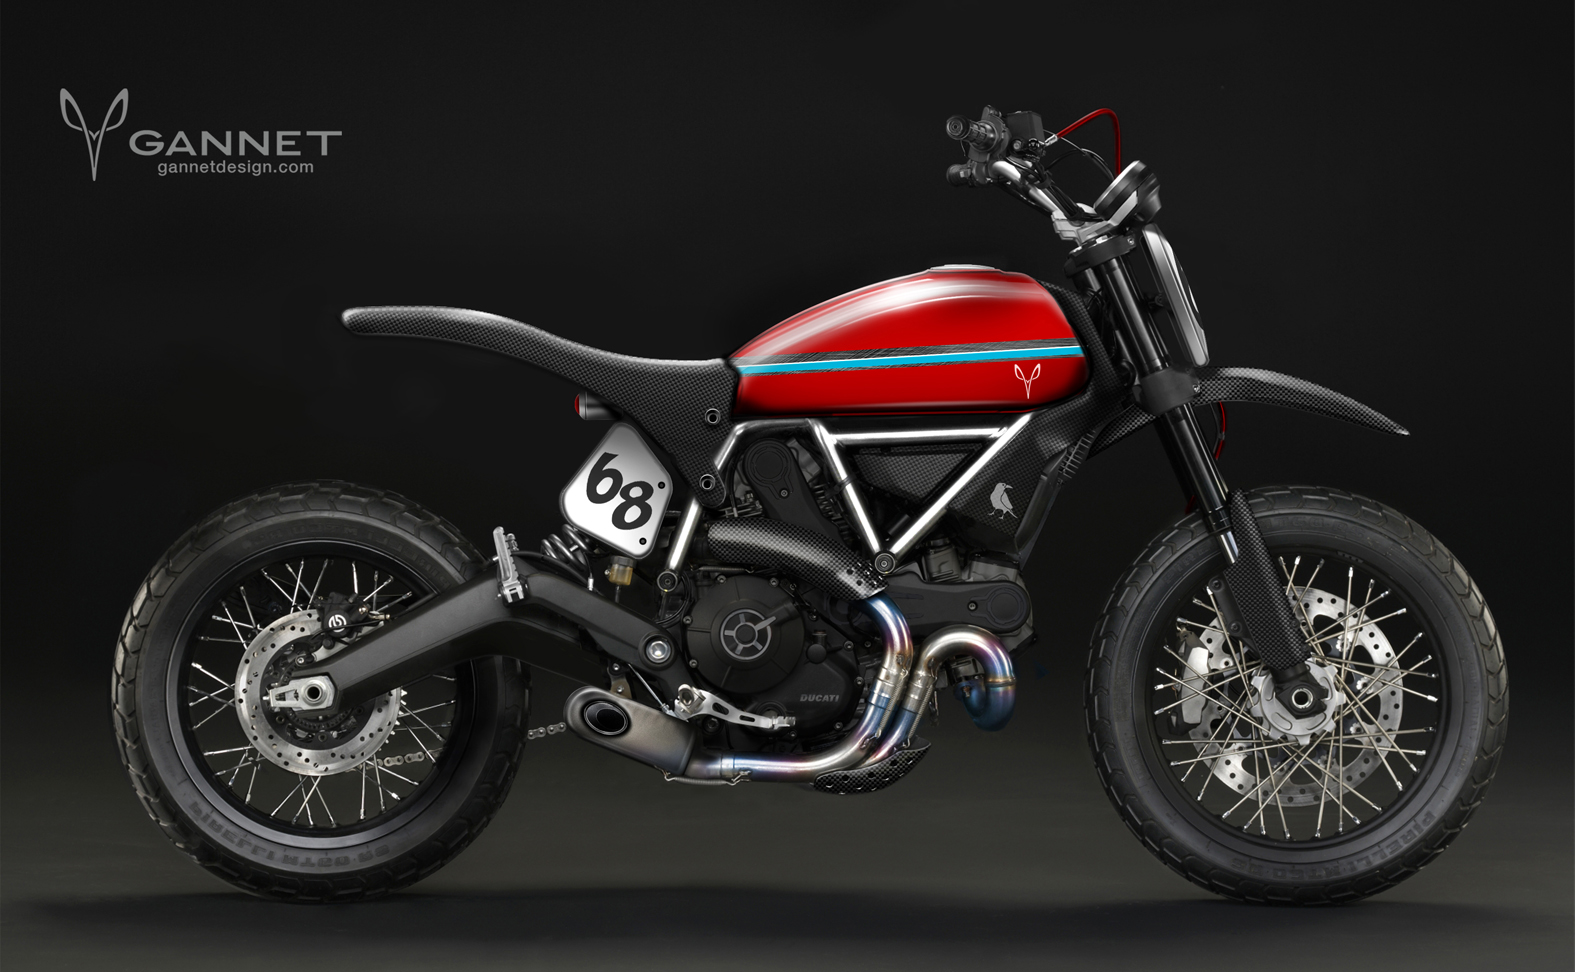 gannet design et la ducati scrambler une histoire d 39 amour. Black Bedroom Furniture Sets. Home Design Ideas